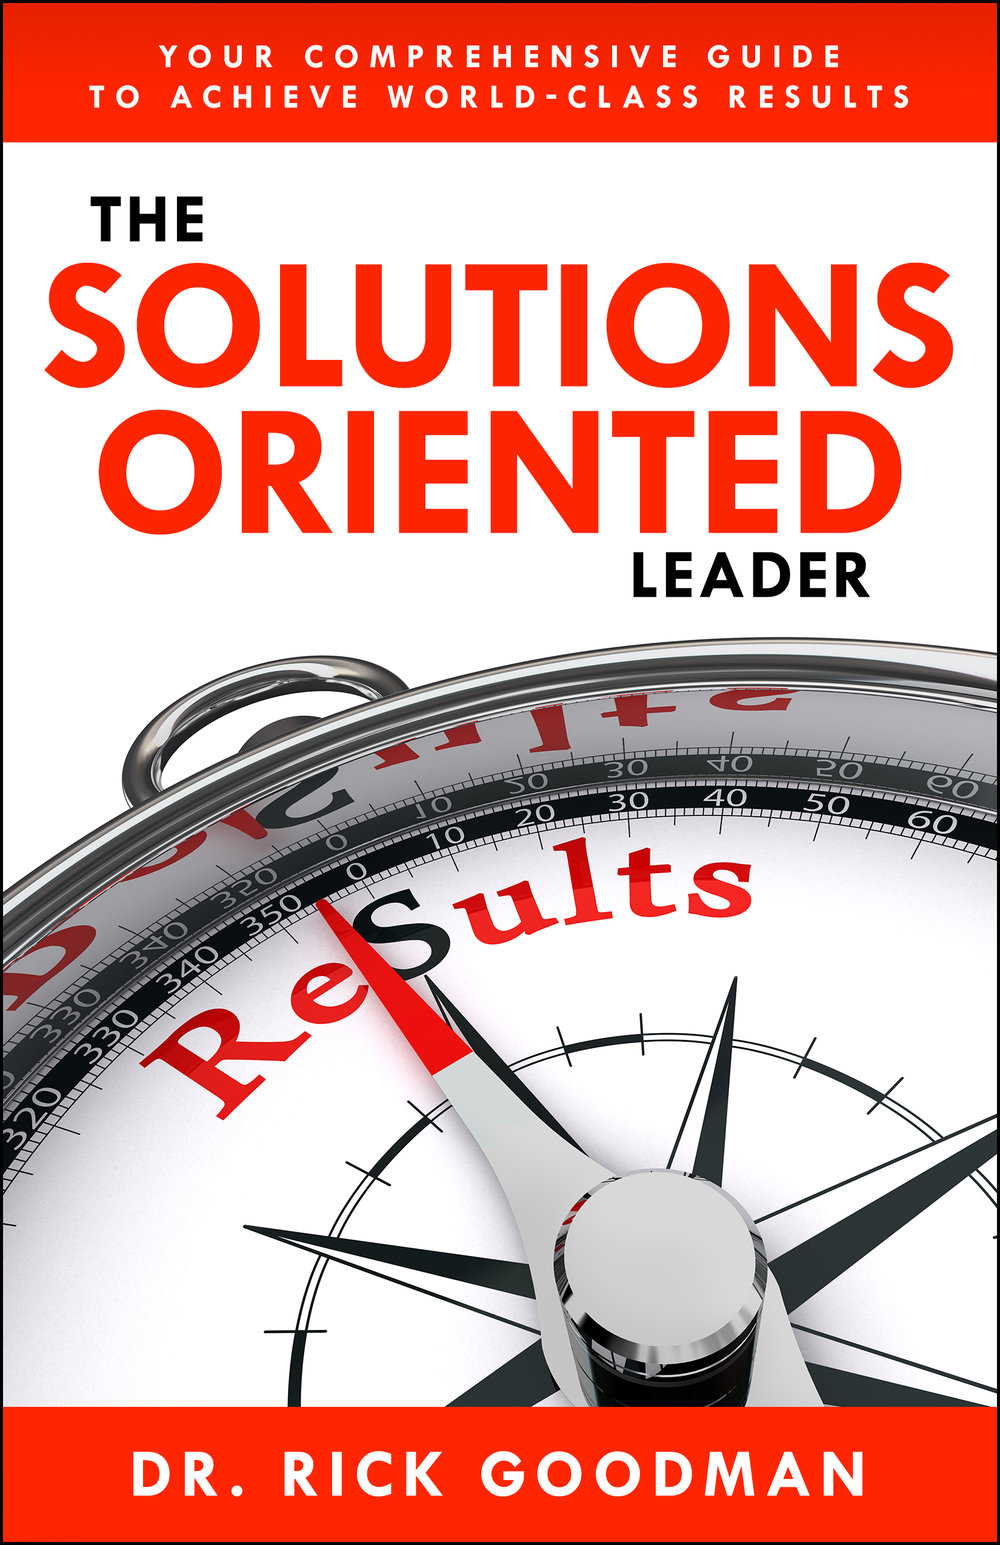 The Solutions-Oriented Leader - By Dr. Rick Goodman